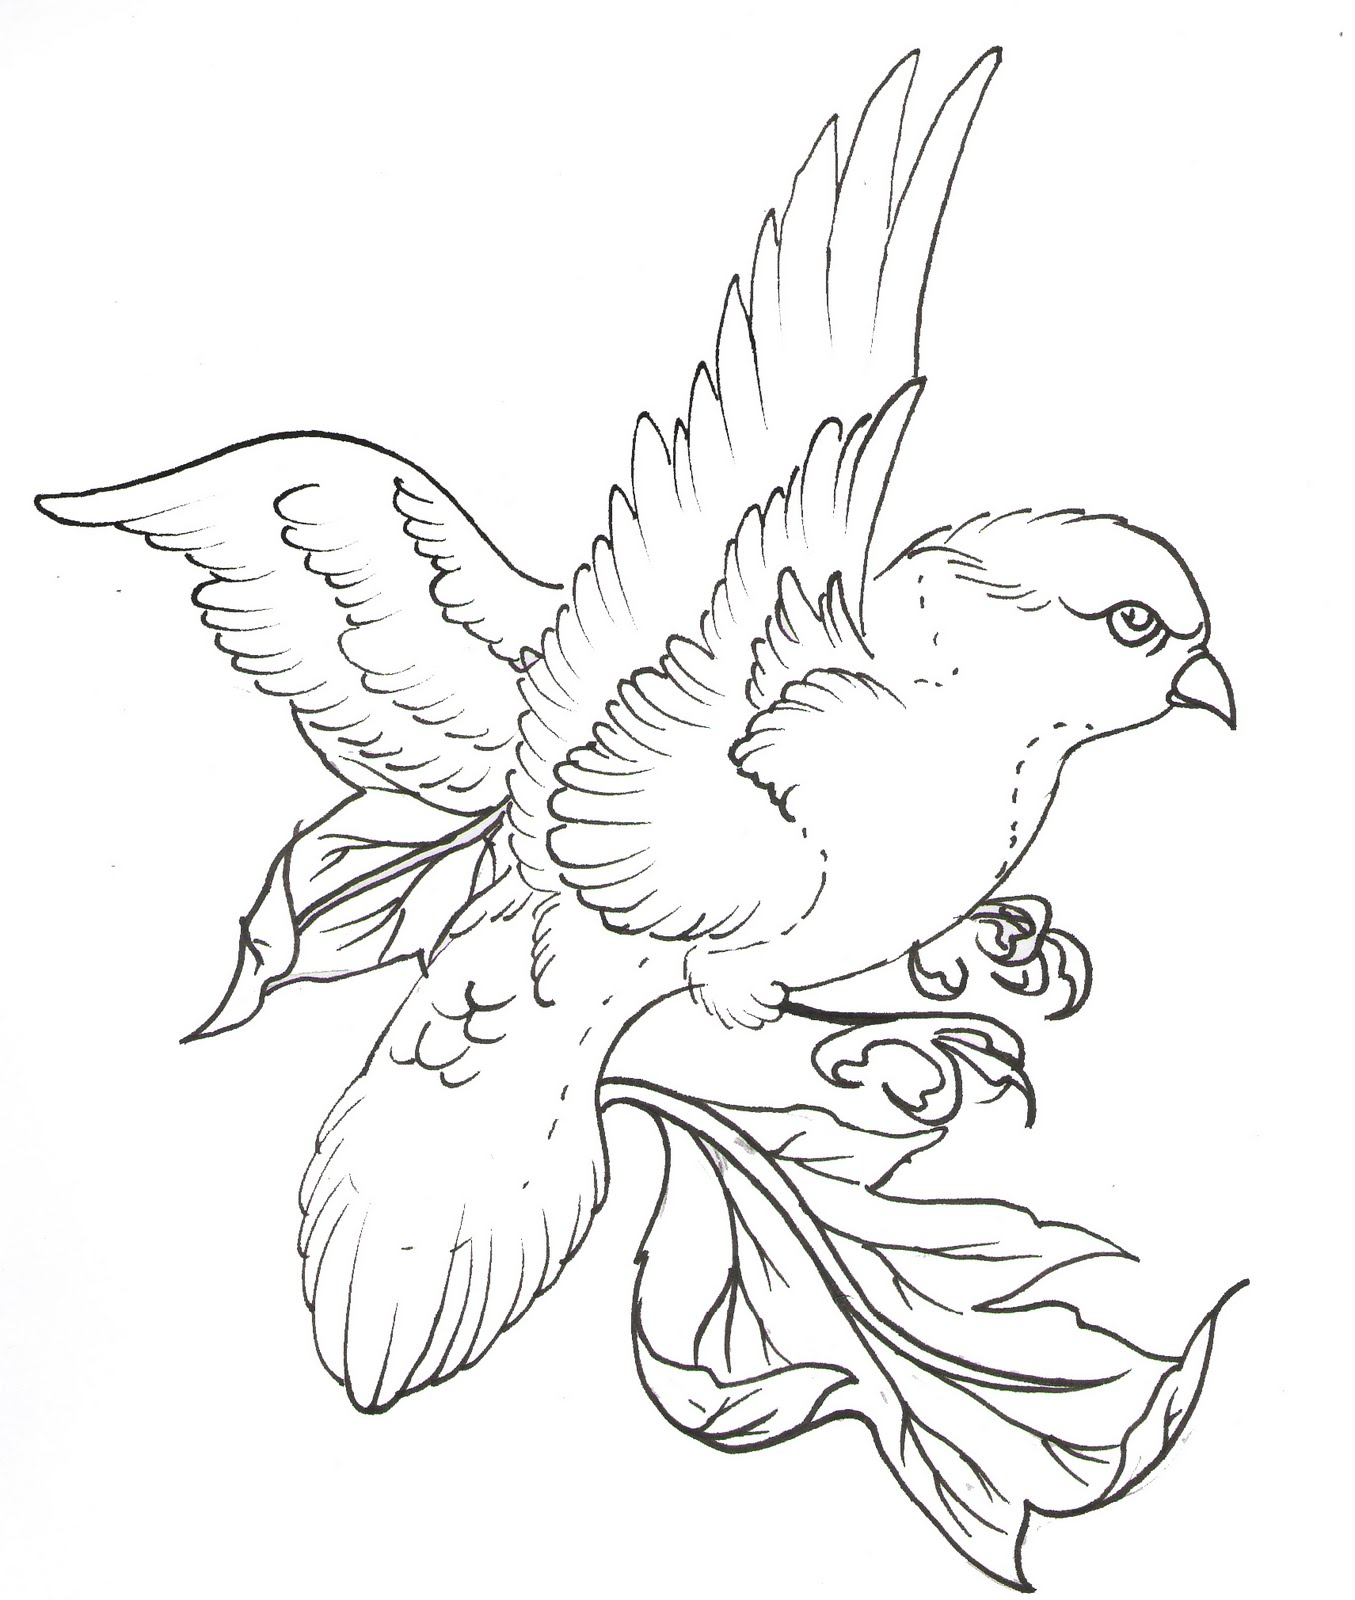 Line Art Work : Line drawing tattoos cliparts